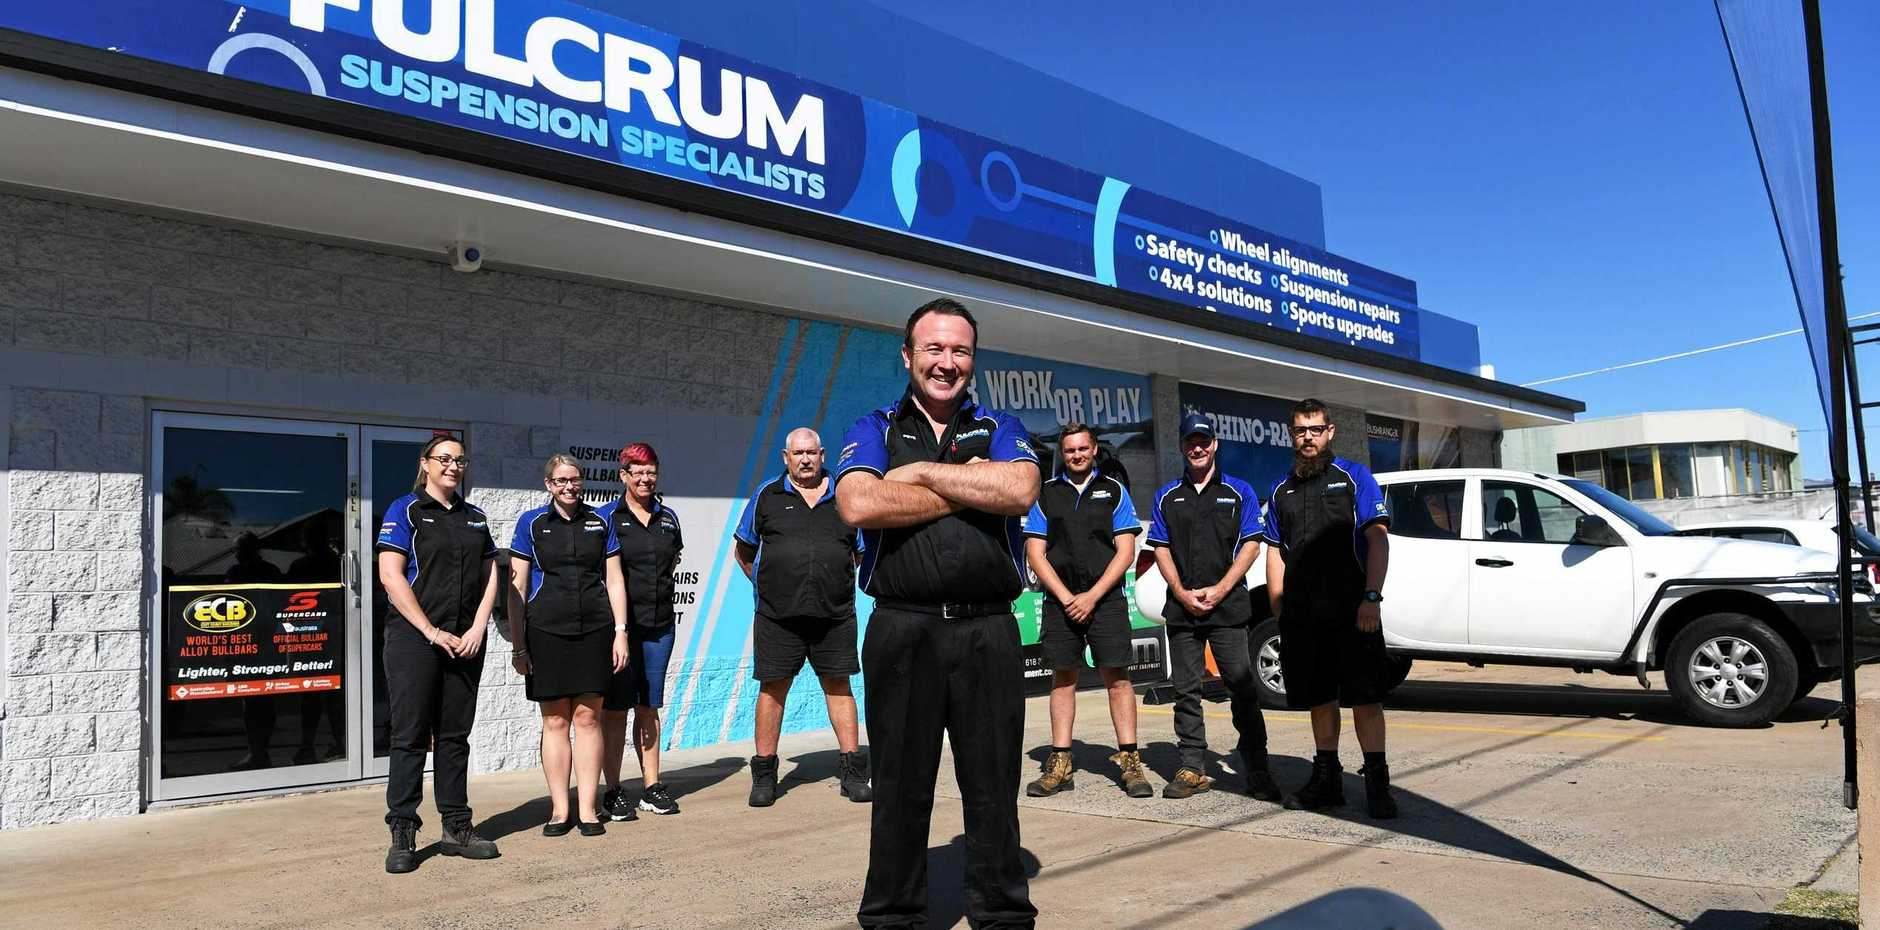 NEW ERA: Fulcrum Suspension Specialists Peter Robinson with staff members Karen Burns, Peta Walker, Shelly Farrow, Dave Williams, Matthew French, Jason Bean and Brad Chippendale and Peter Robinson.